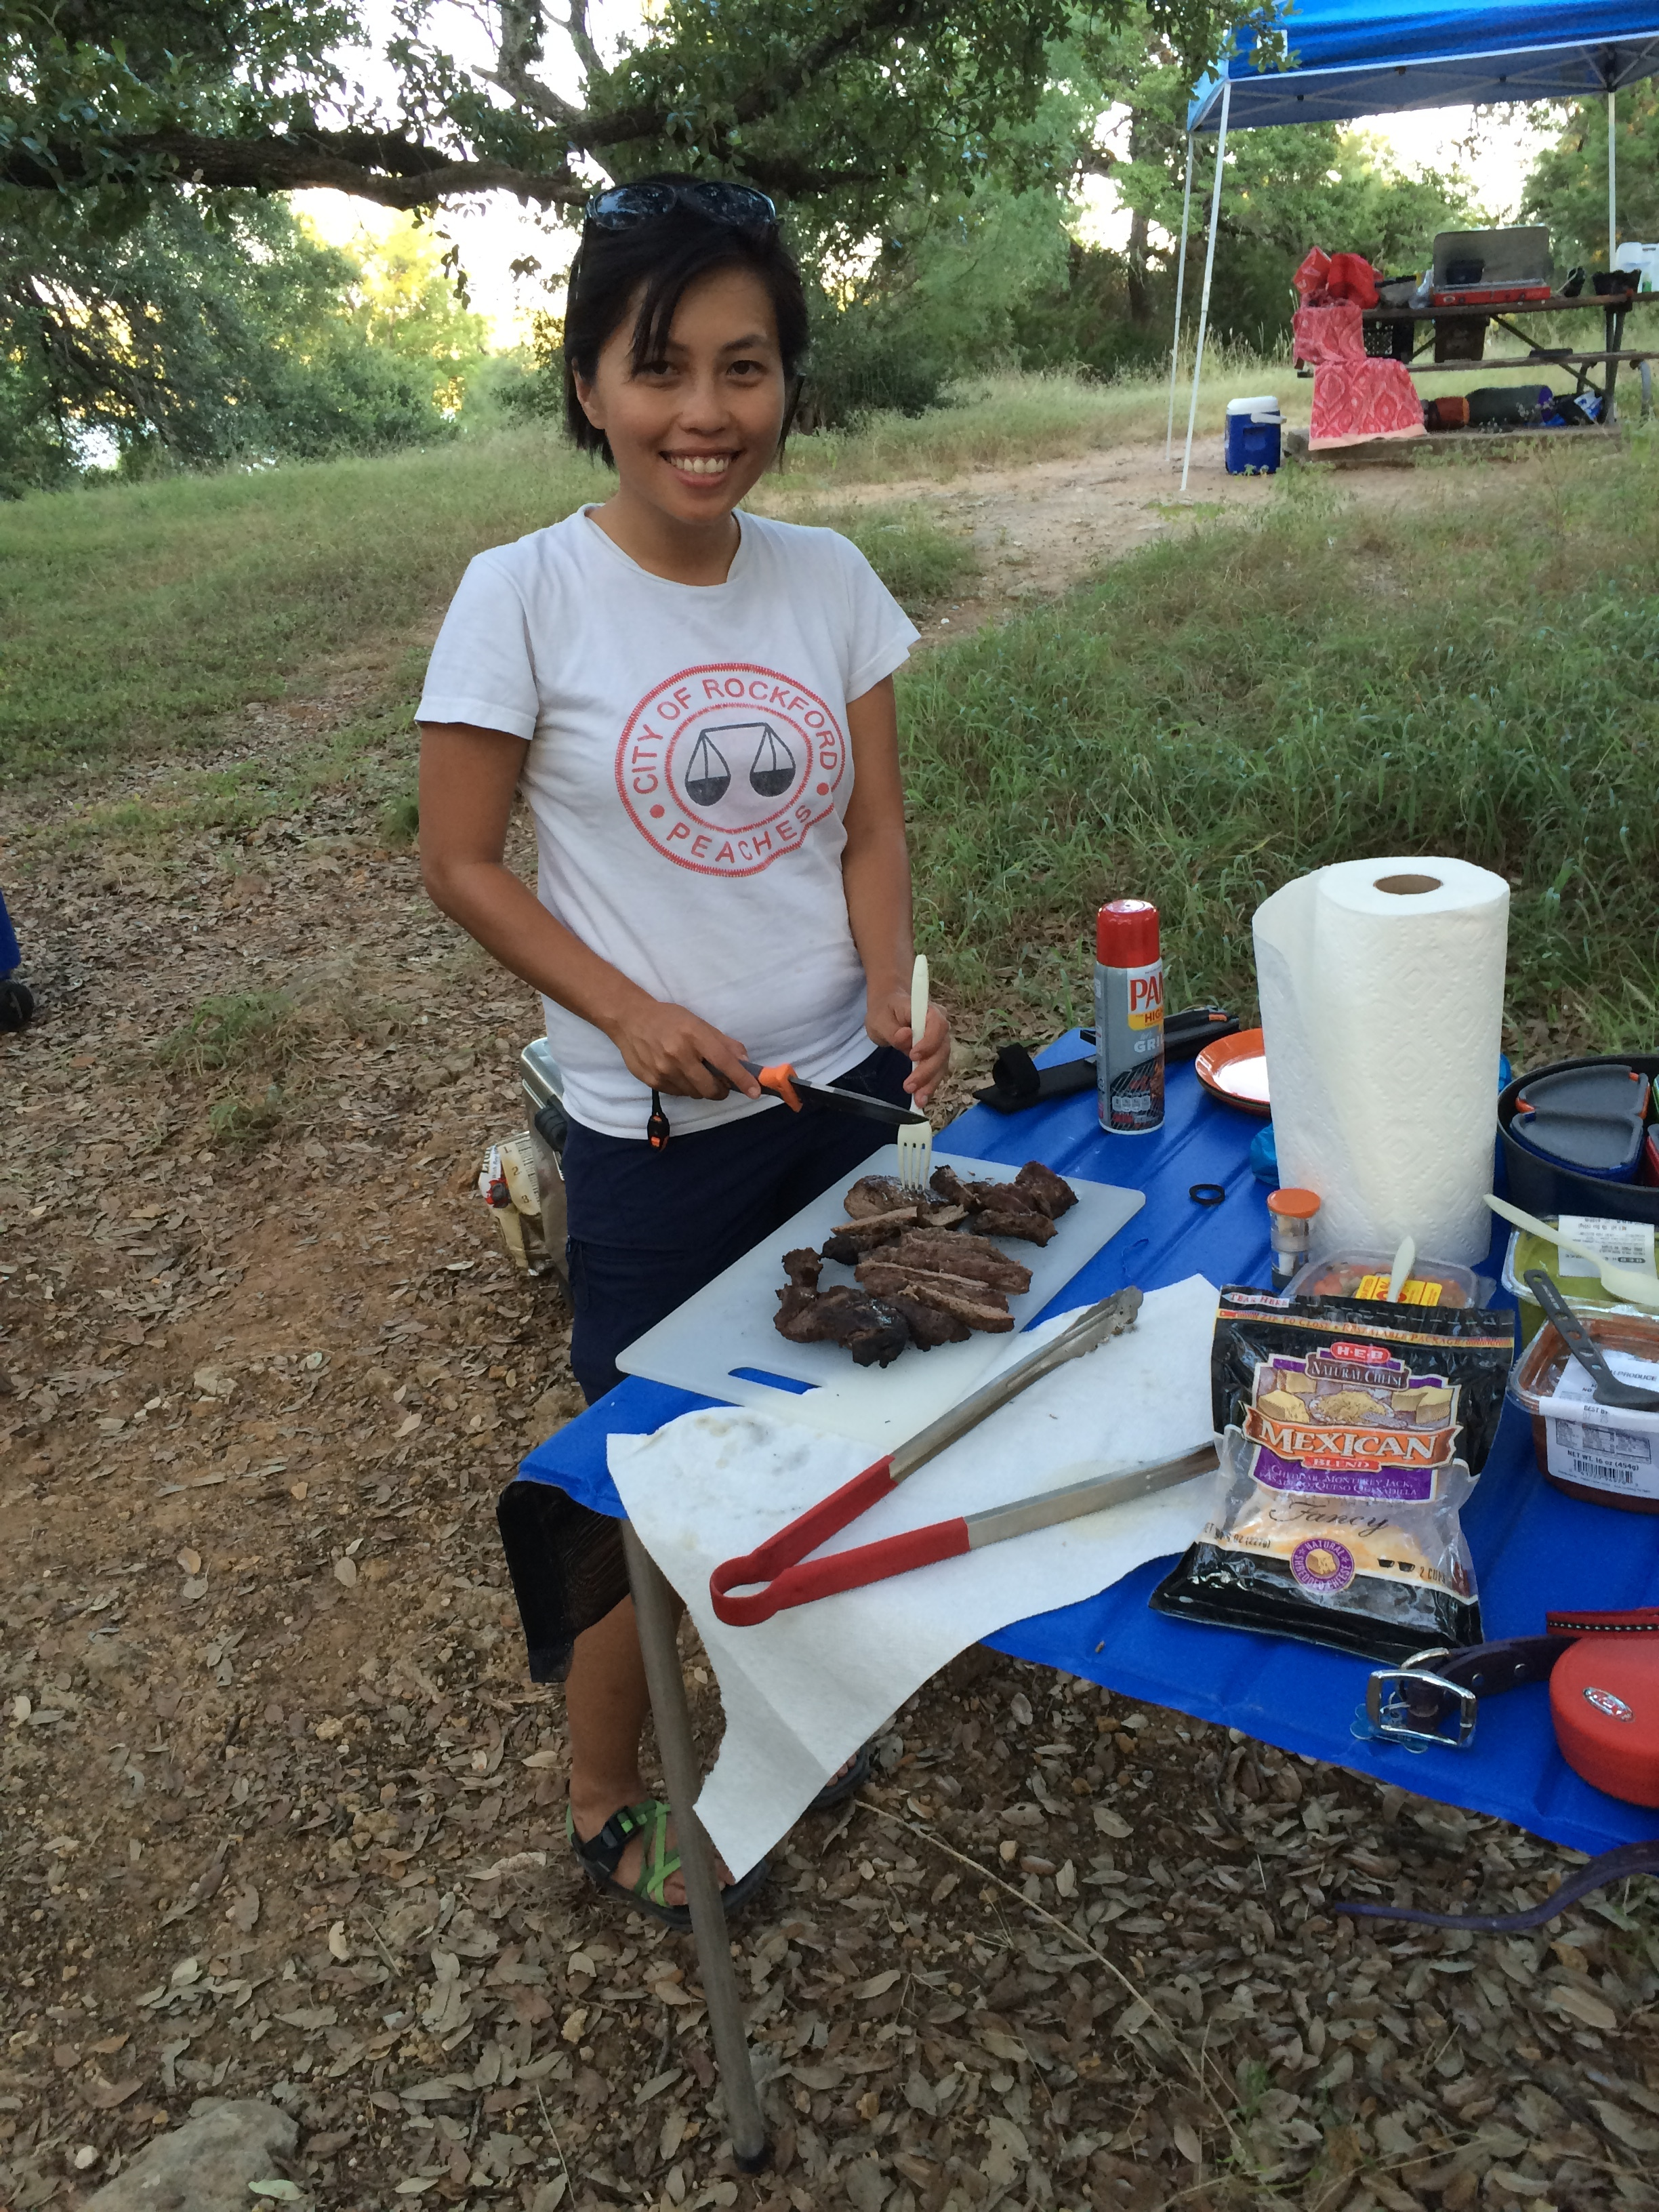 Cooking at camp!